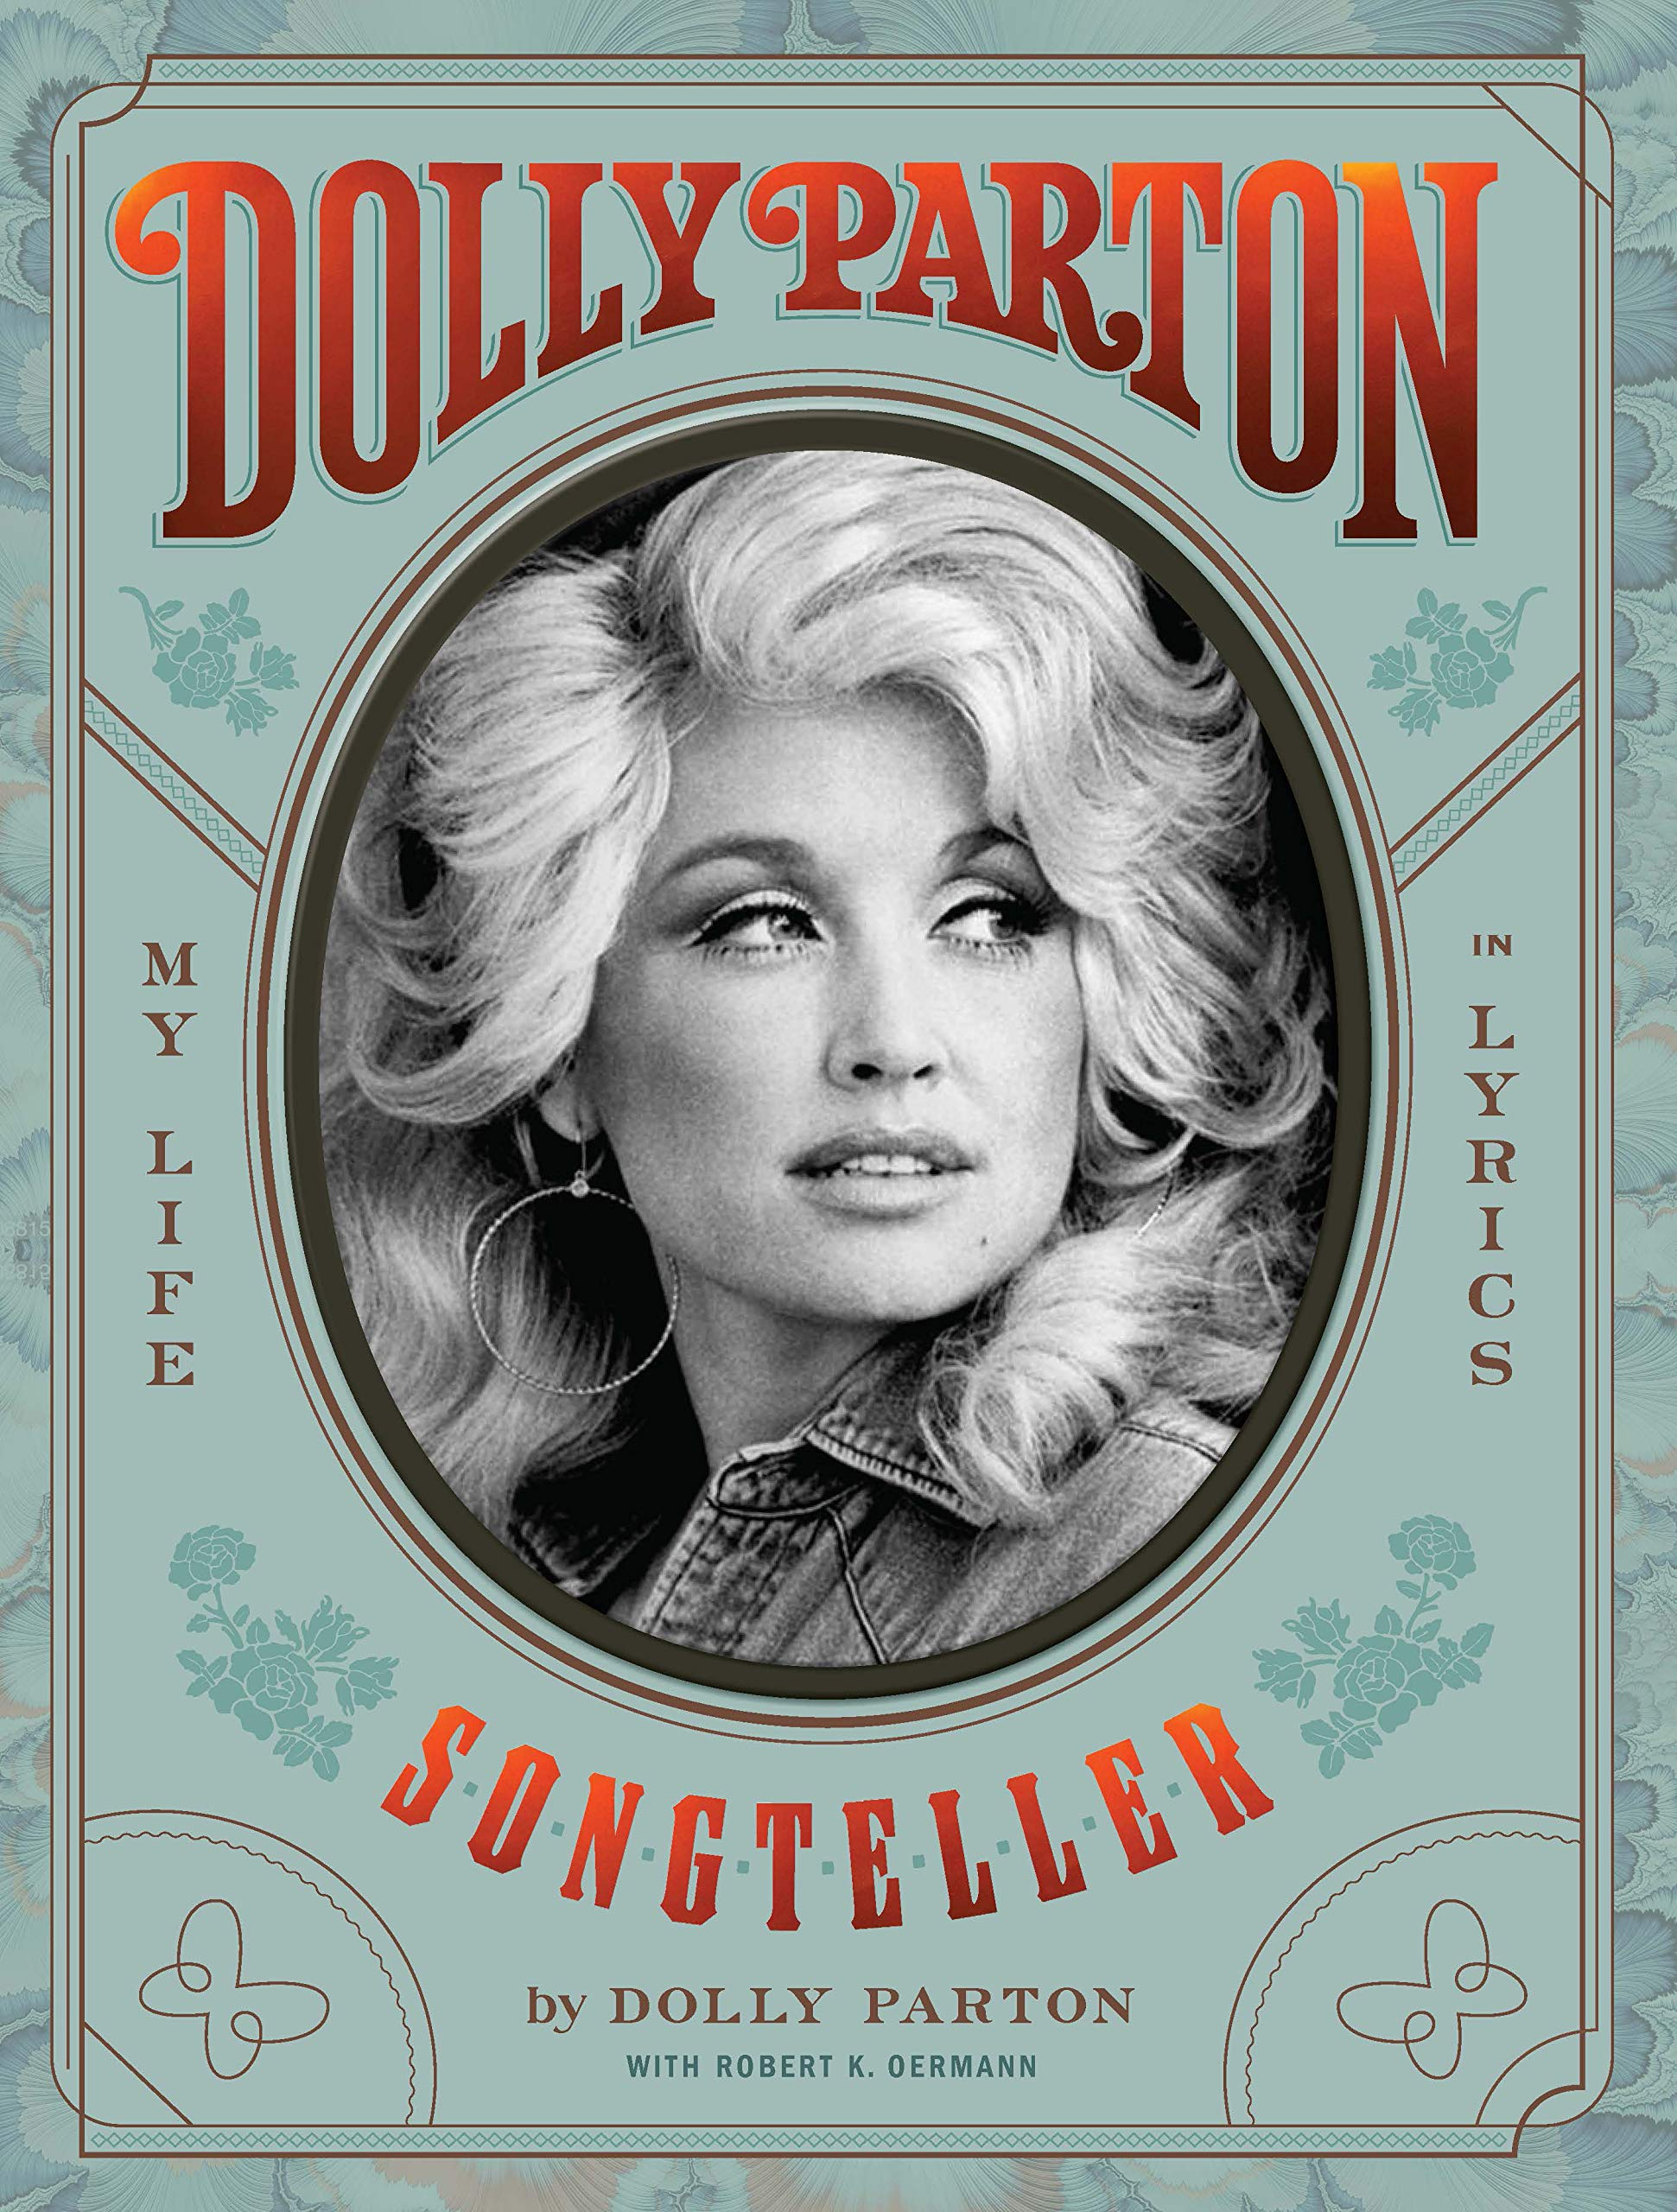 Cover image of Dolly Parton, Songteller by Dolly Parton & Robert K. Oermann